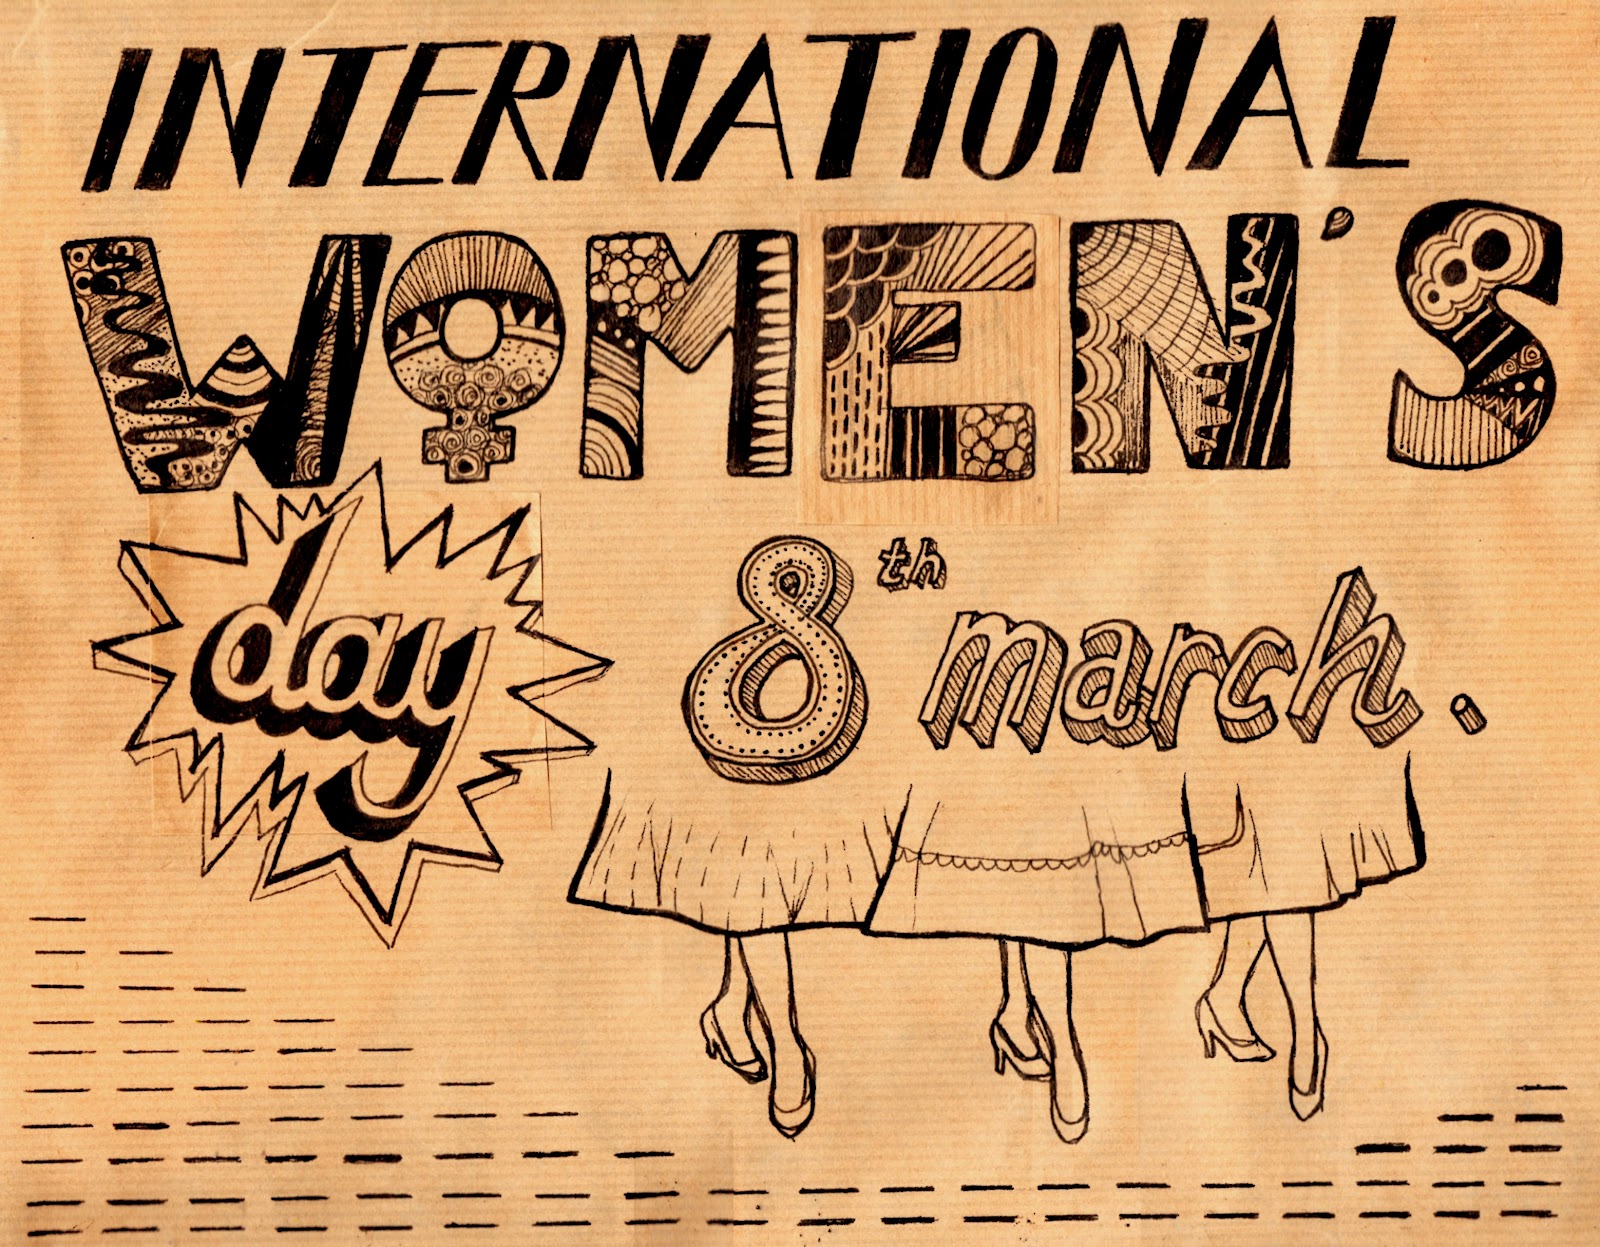 Clarence Illustration: International Women's day posters